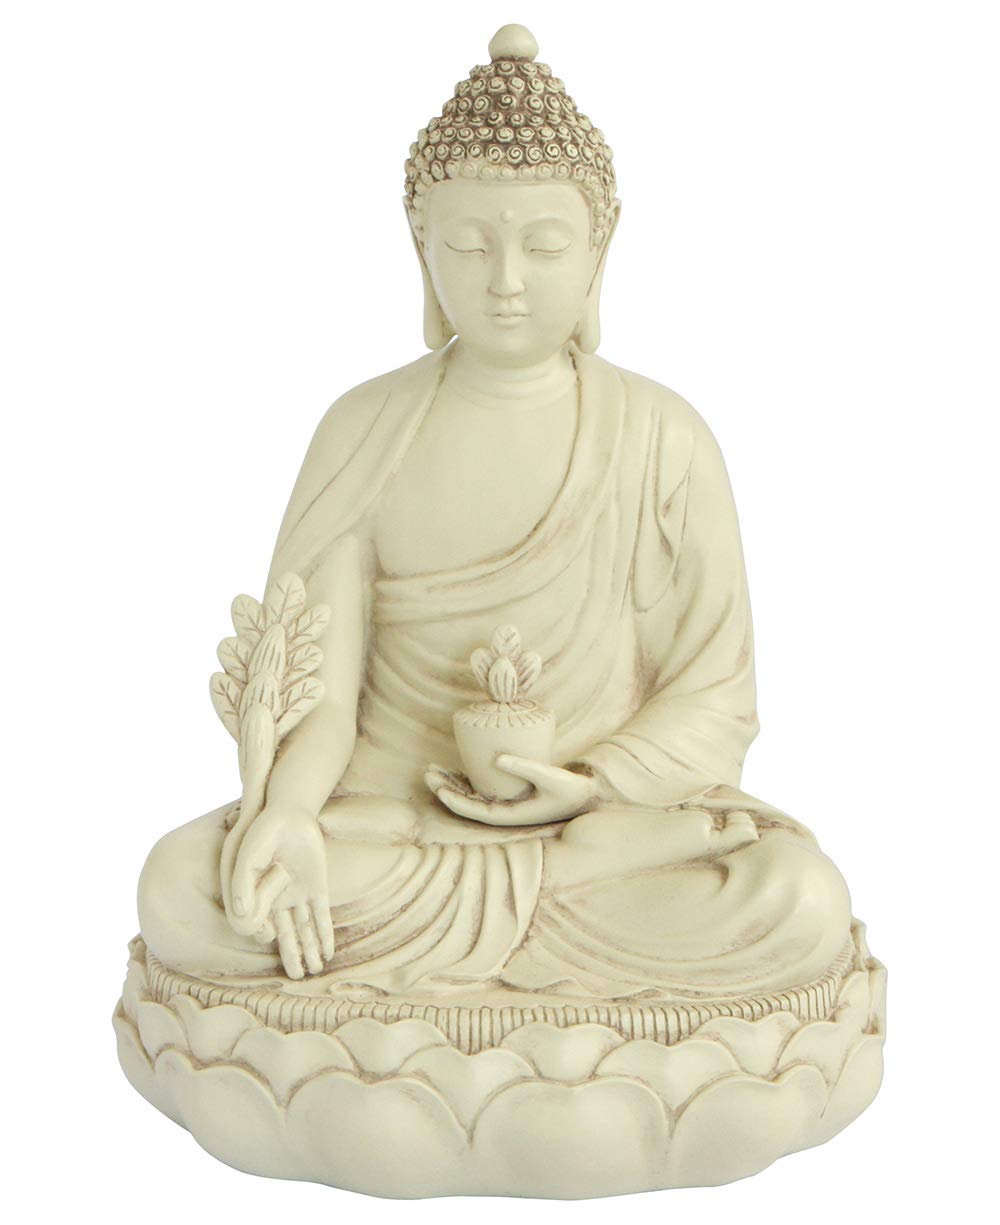 Buddha Groove Healing Medicine Buddha Statue with Elegant Off-White Finish and Made of Cast Stone in a Minimalist Serene Design | 11.5 Inches Tall by Buddha Groove